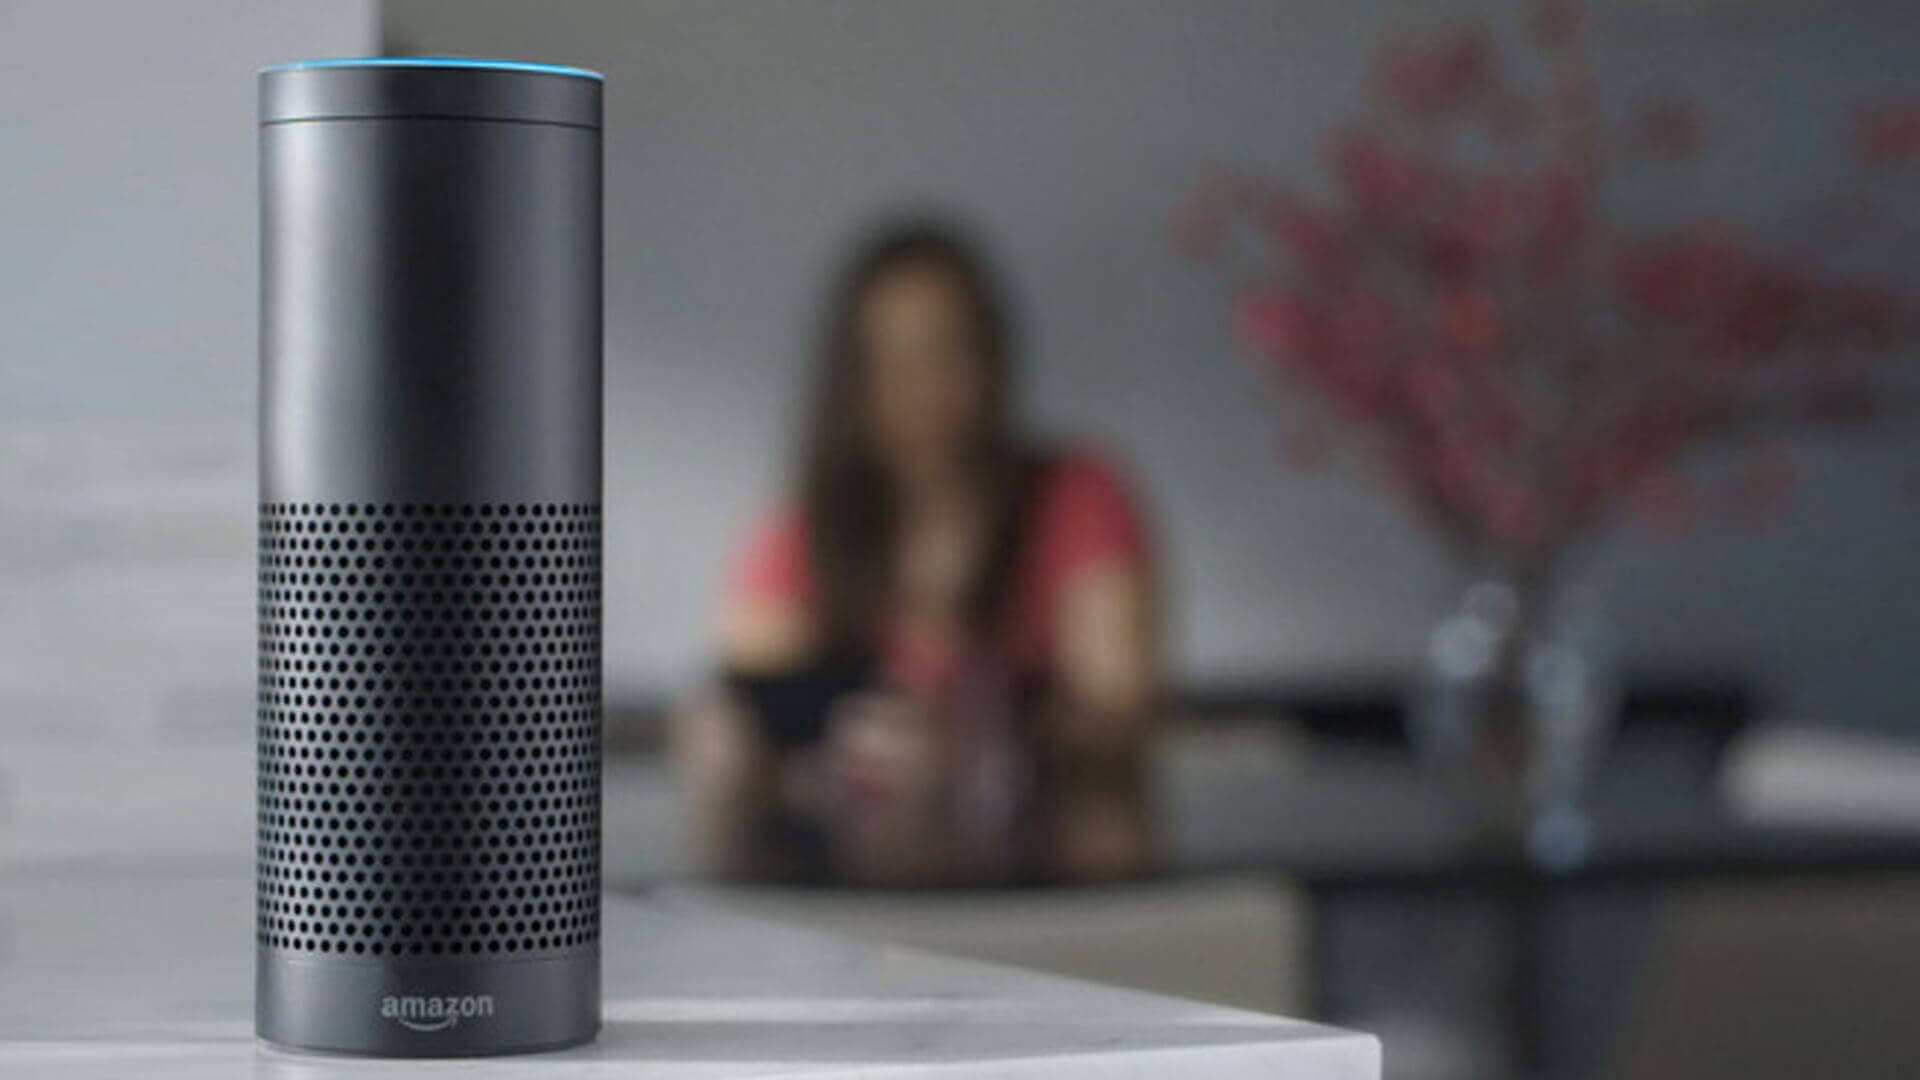 Amazon files patent for real-time accent detection and translation